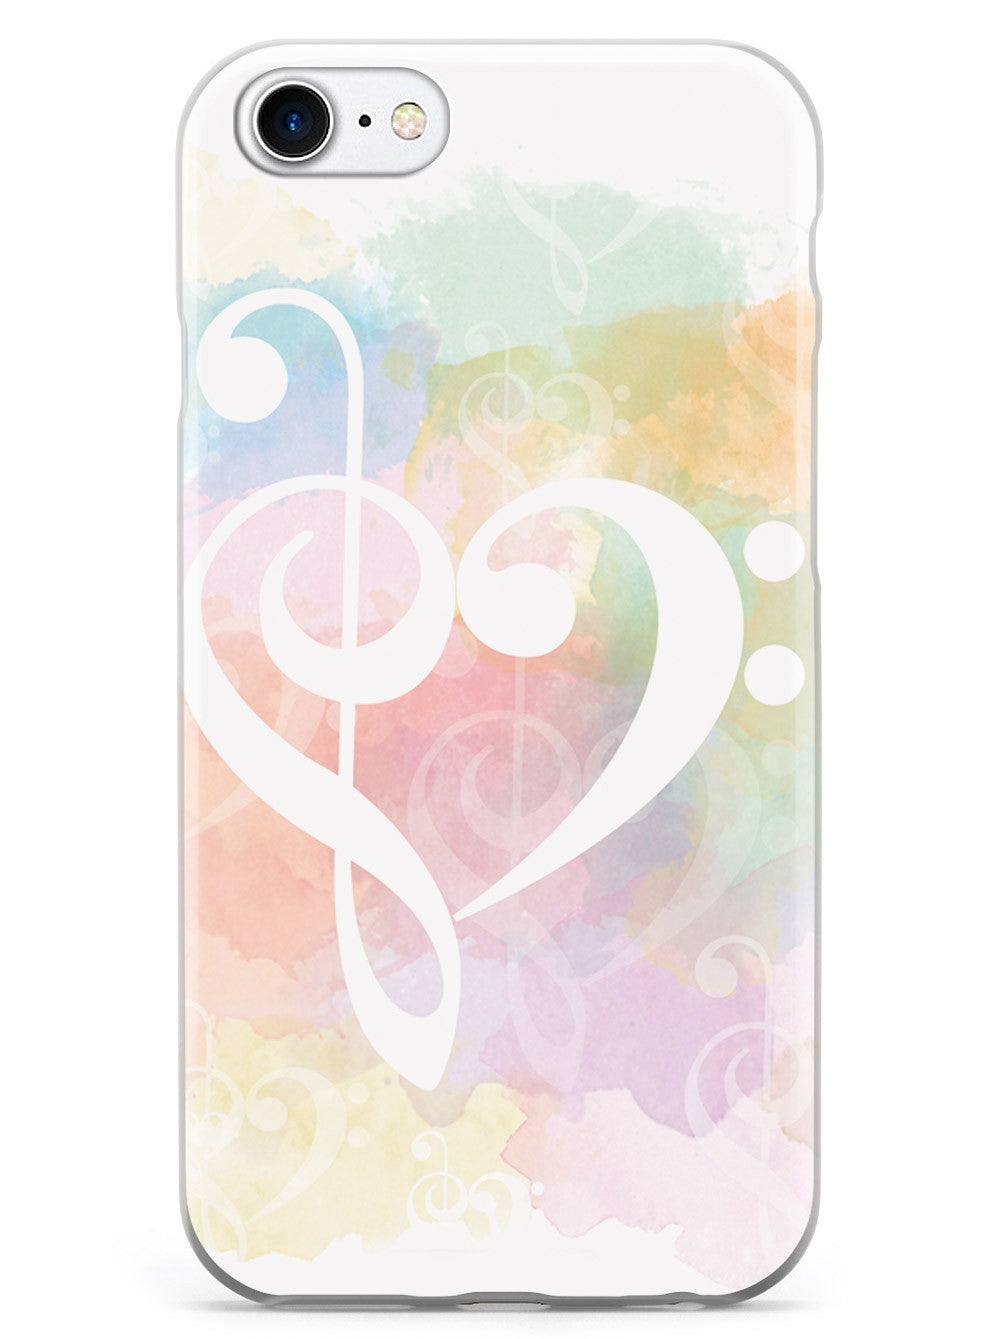 Treble Clef - Bass Clef Heart Case